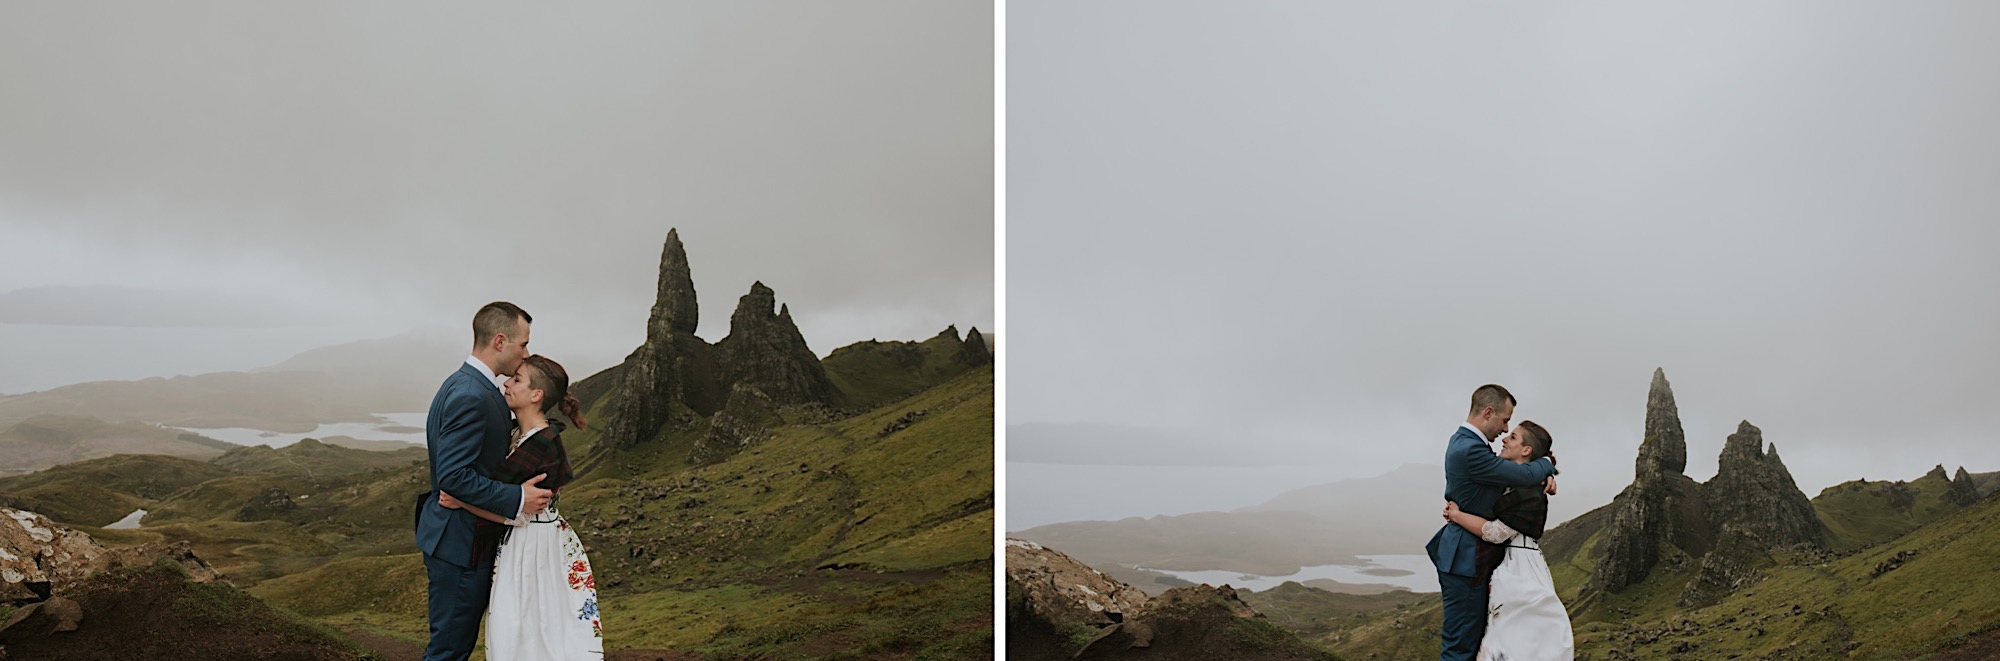 skye wedding elopement photographer